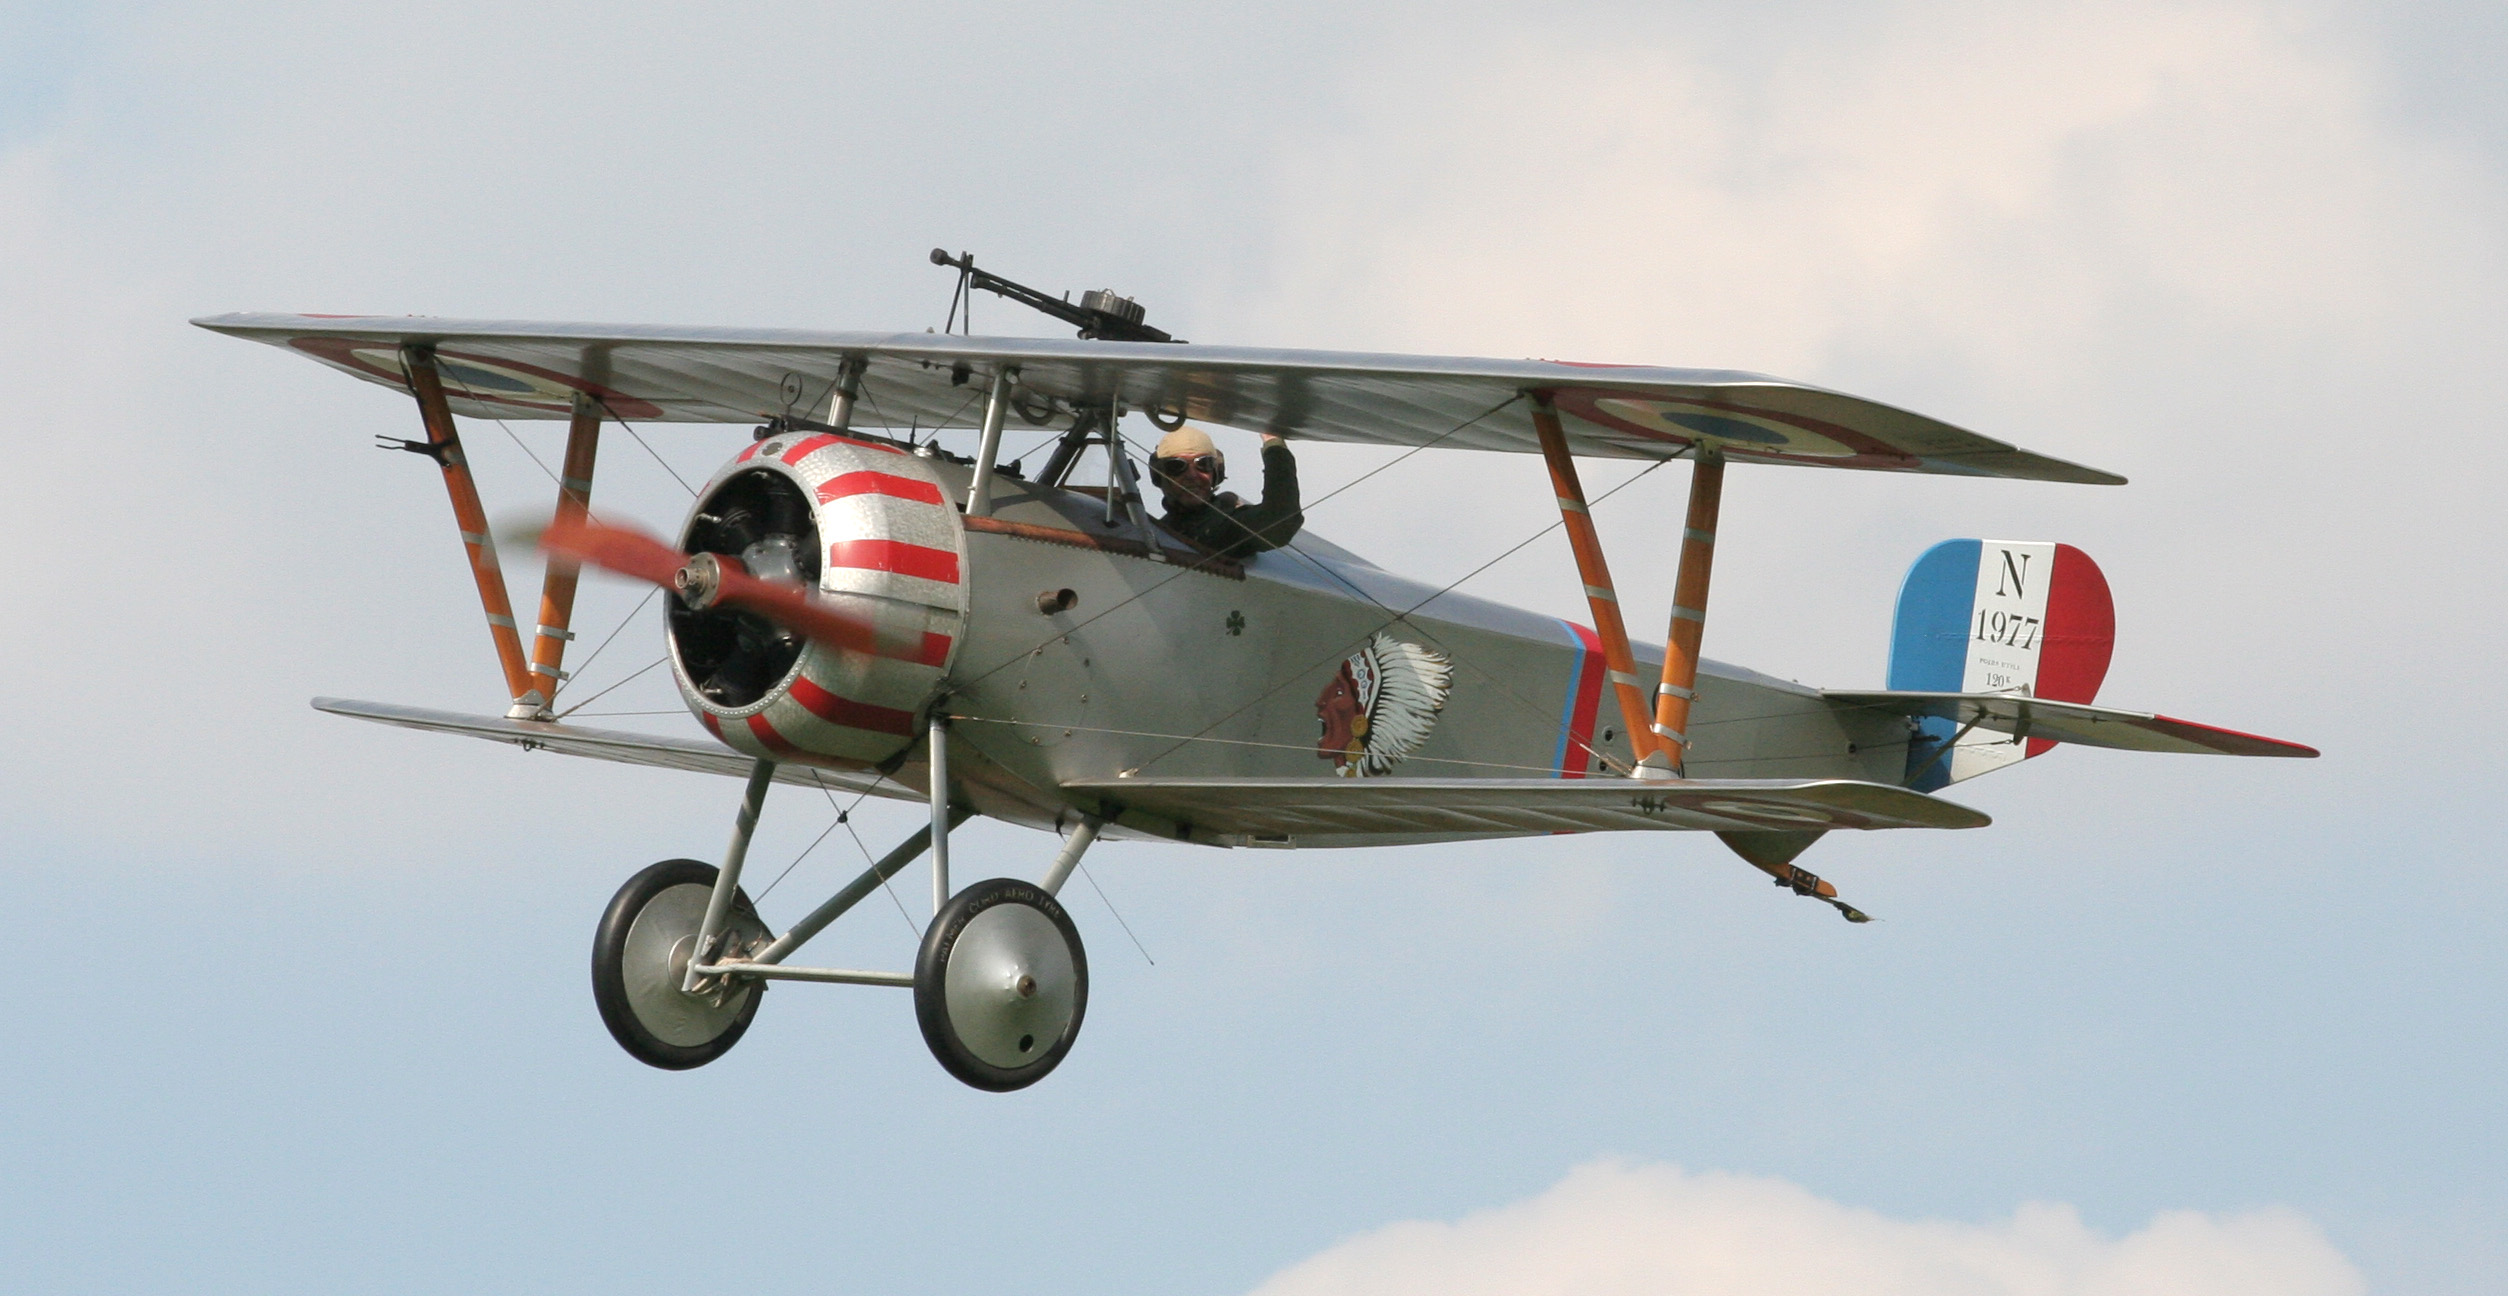 Nieuport 17 at Festival of History 07